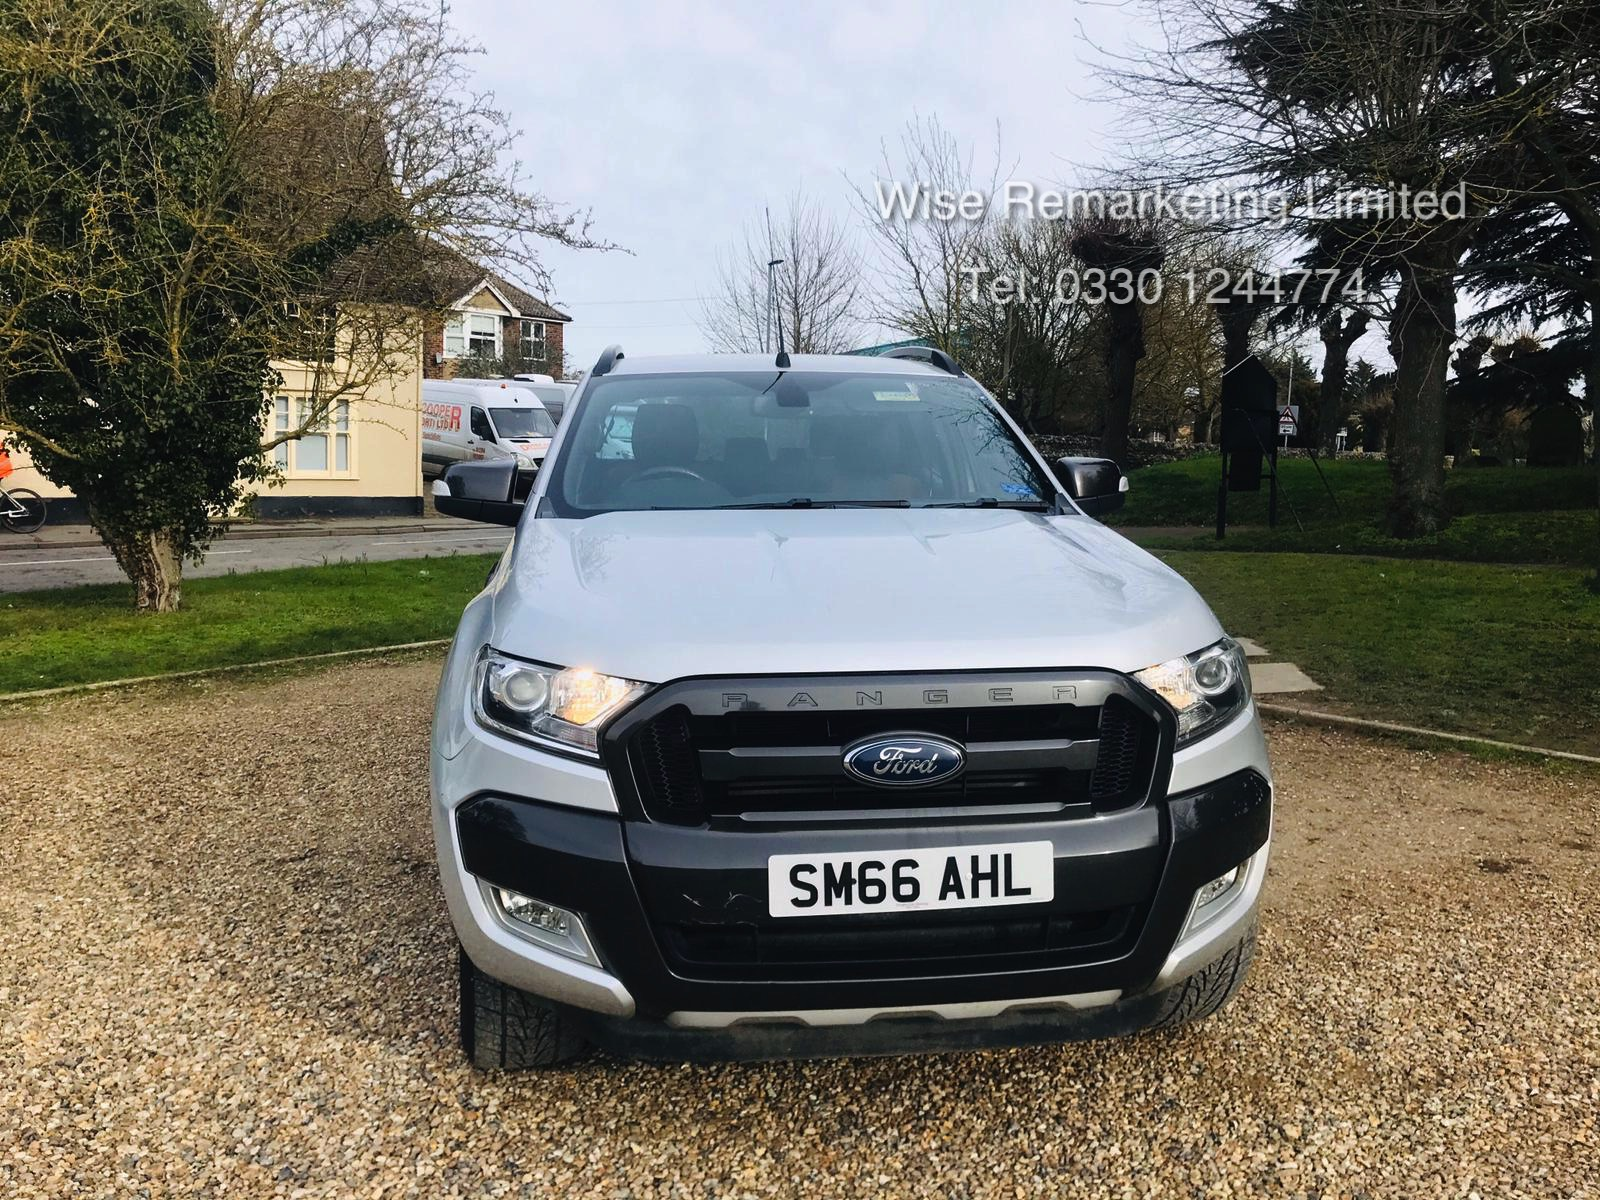 Ford Ranger 3.2 TDCI WILDTRAK - Auto - 2017 Model - 1 Former Keeper - 4x4 - TOP OF THE RANGE - Image 4 of 16